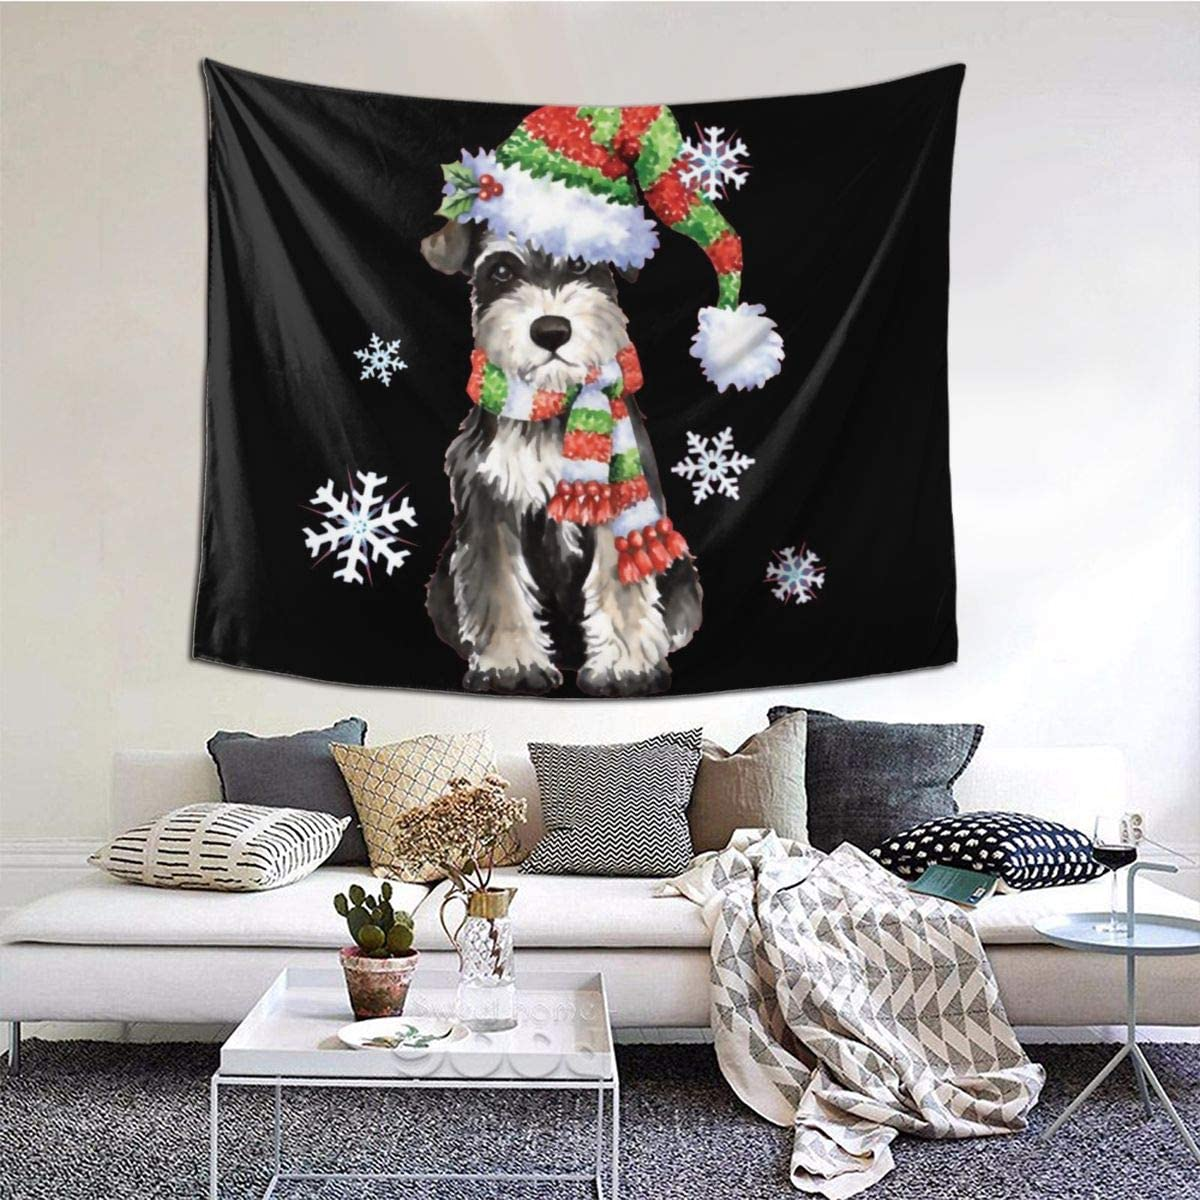 Hangyin Happy Howlidays Miniature Schnauzer Wall Tapestry with Art Chakra Home Decorations for Bedroom Dorm Decor in 60x50 Inches